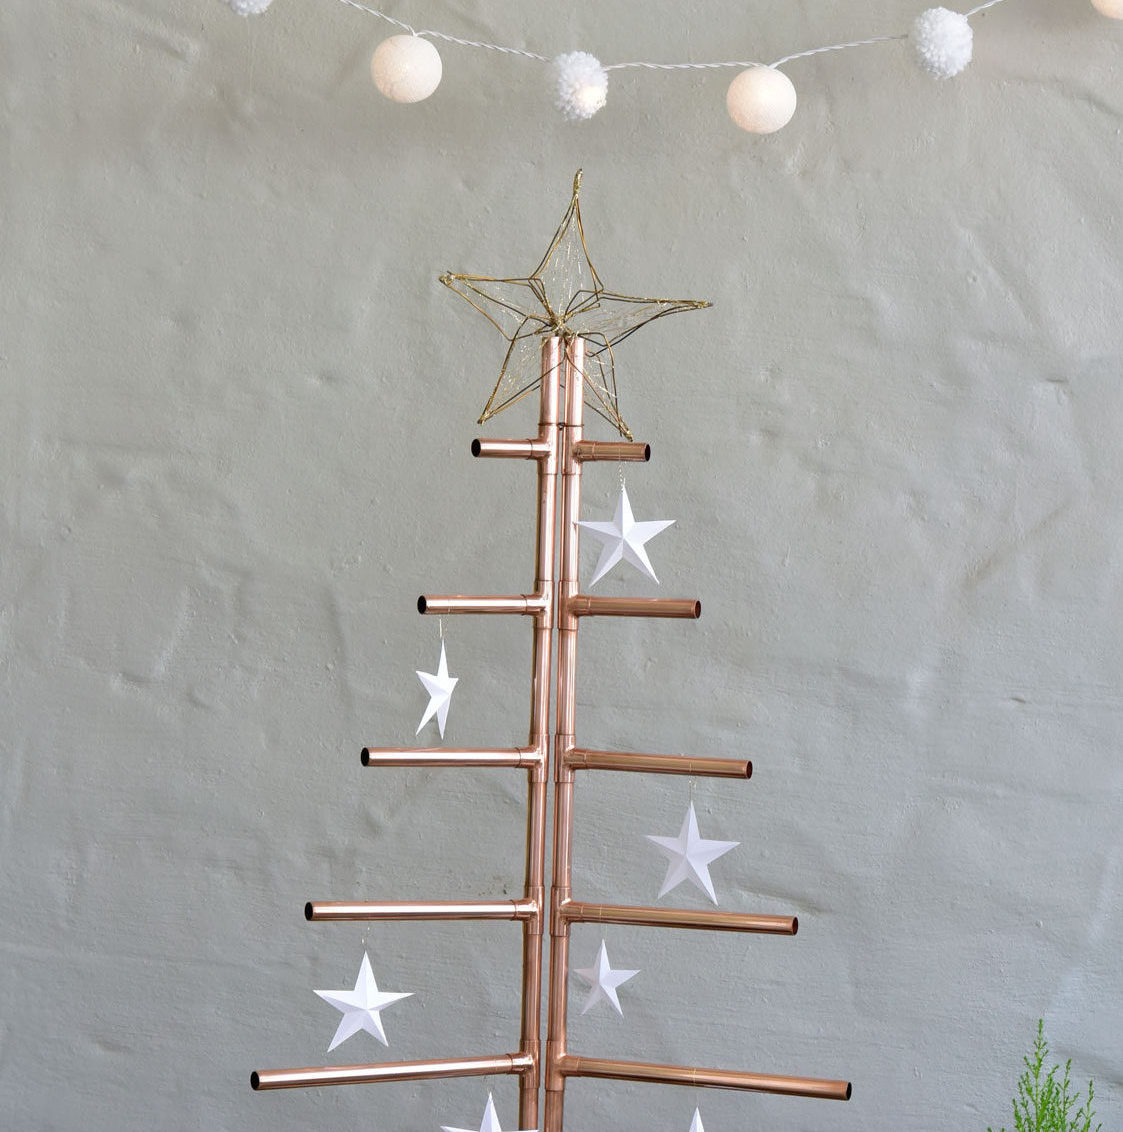 Make A Christmas Tree From Copper Piping SA Garden And Home